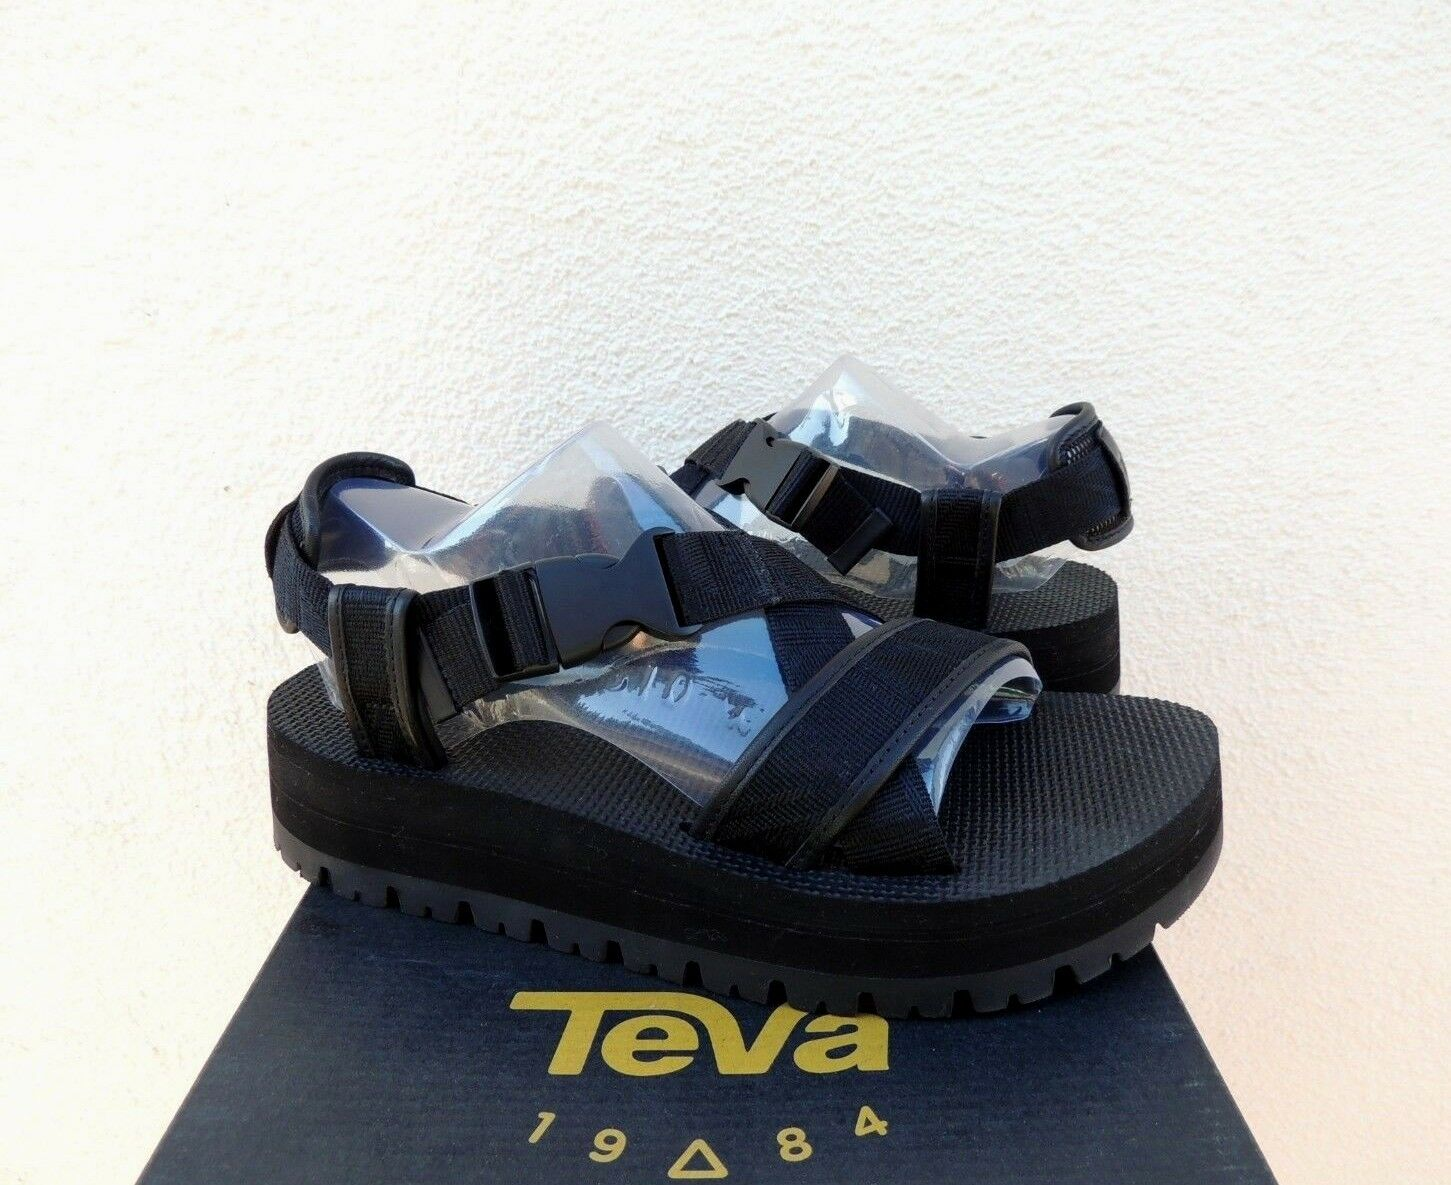 TEVA BLACK INDIO WHIP STRAPPY PLATFORM SANDALS, US 7 7 7  EUR 38  RETAIL   175 NIB f08bb8